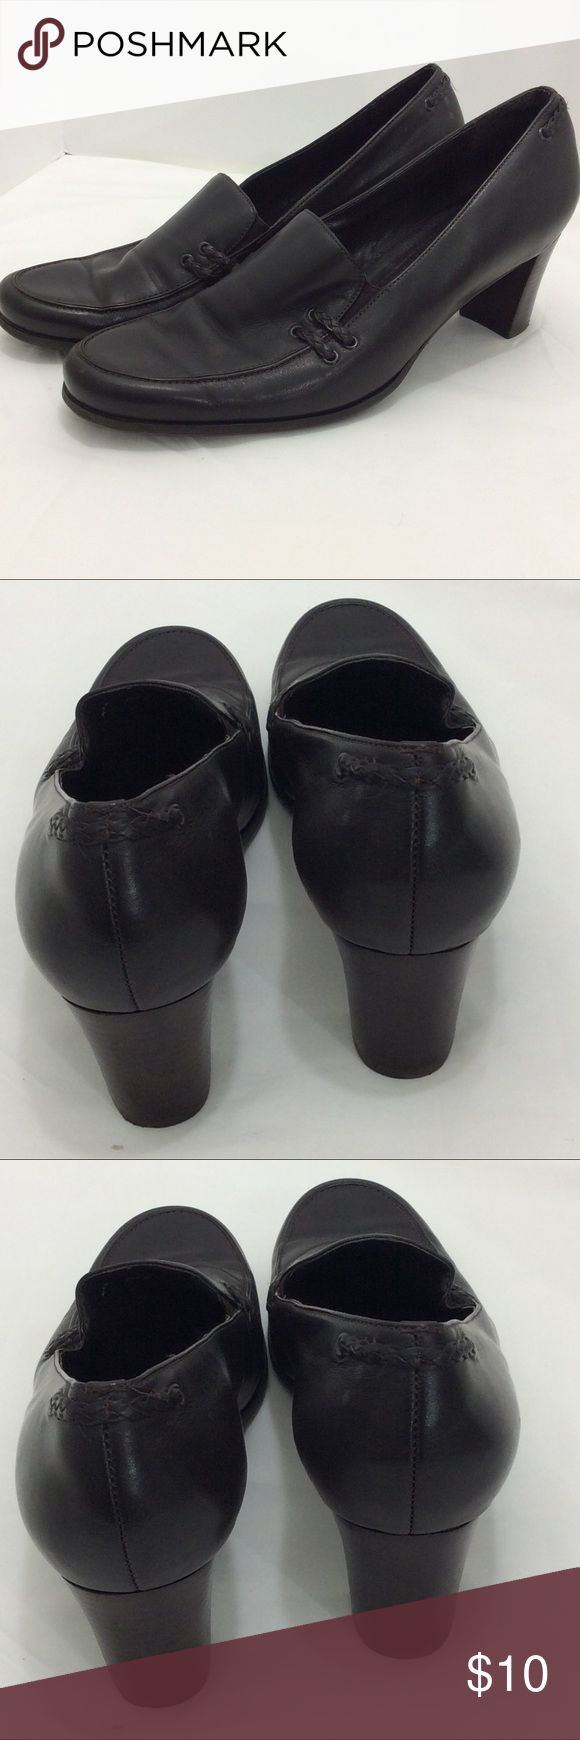 Trotters ladies leather shoes sz 10 US Trotters ladies leather shoes sz 10 US. Black Excellent condition. Thanks. trotters Shoes Heels